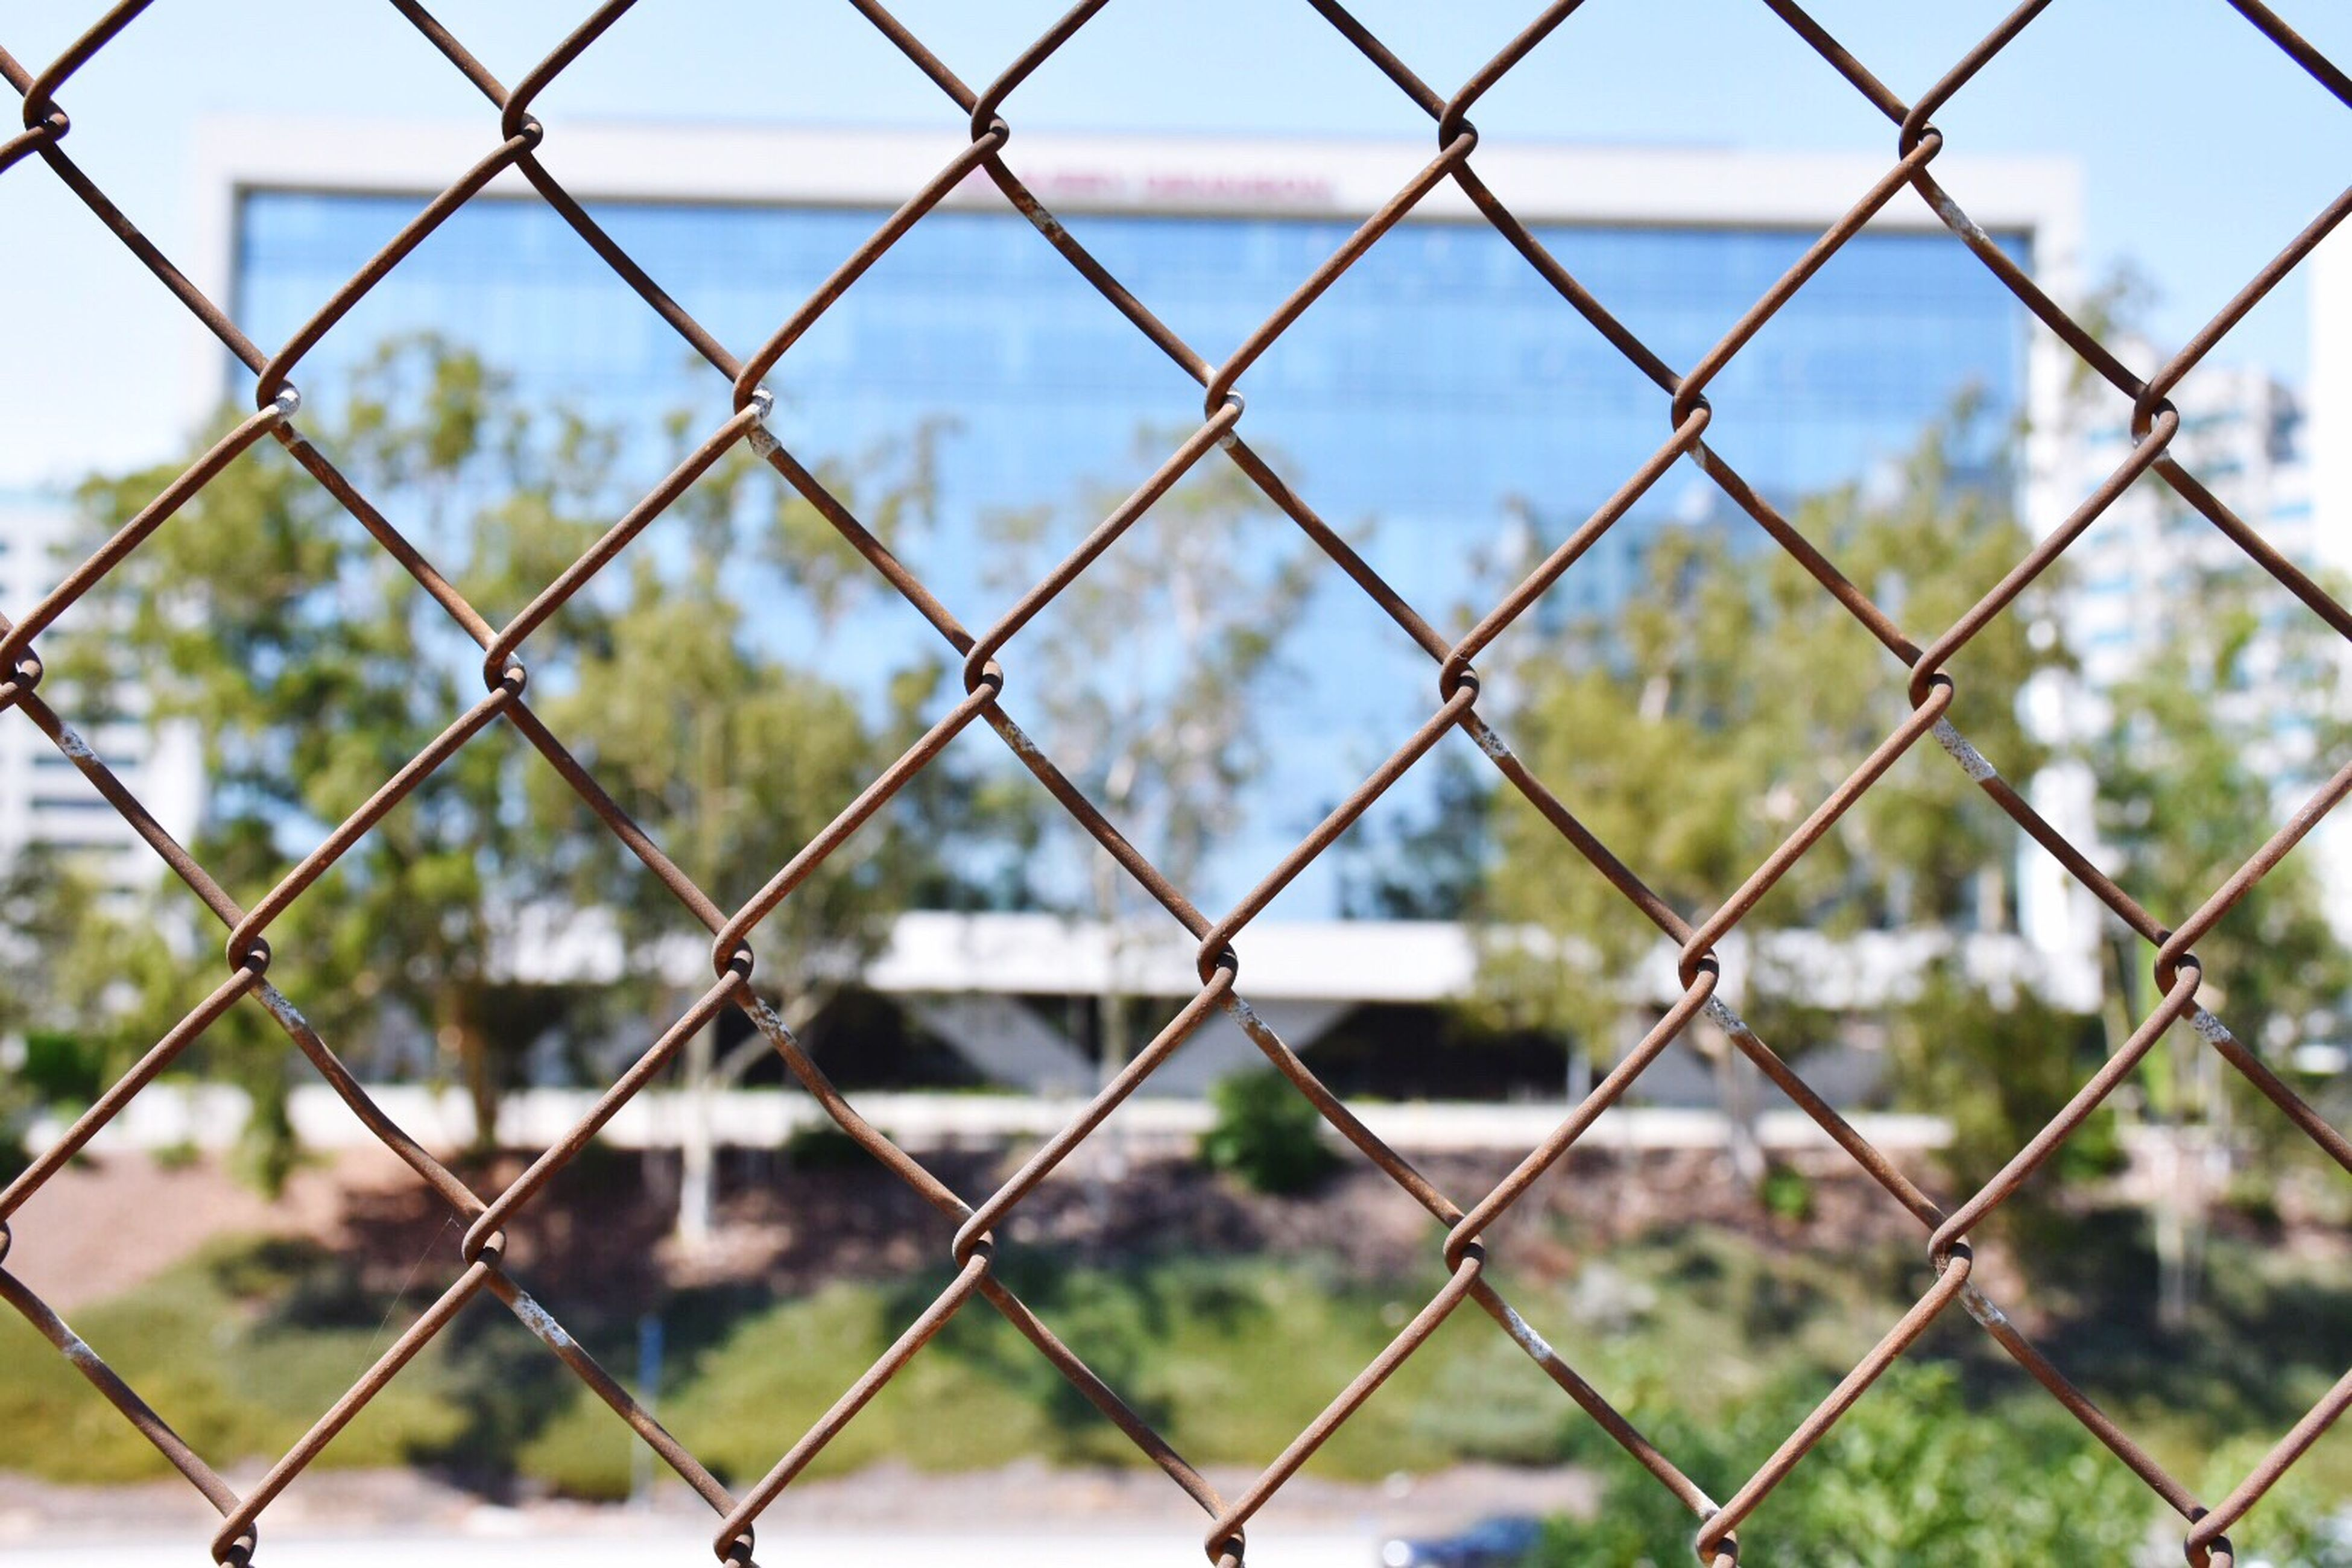 chainlink fence, protection, safety, security, metal, focus on foreground, full frame, day, pattern, no people, outdoors, close-up, crisscross, nature, sky